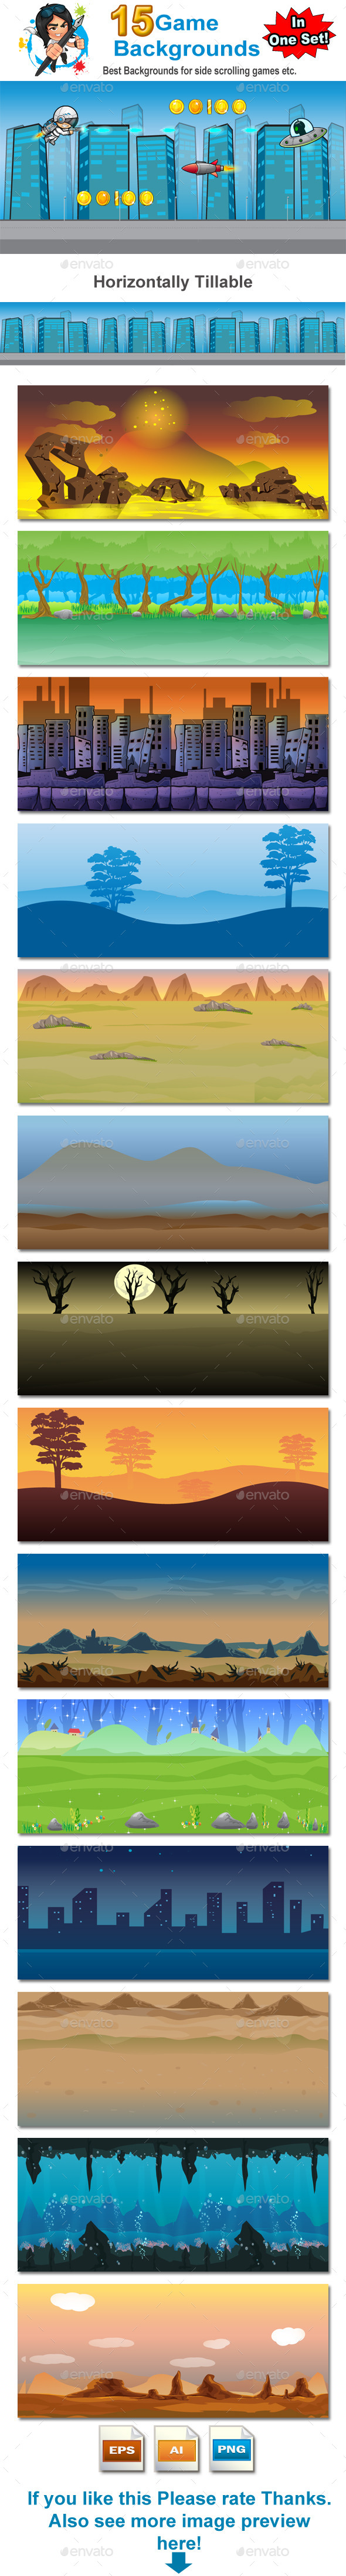 GraphicRiver Game Backgrounds in one Set 8790161